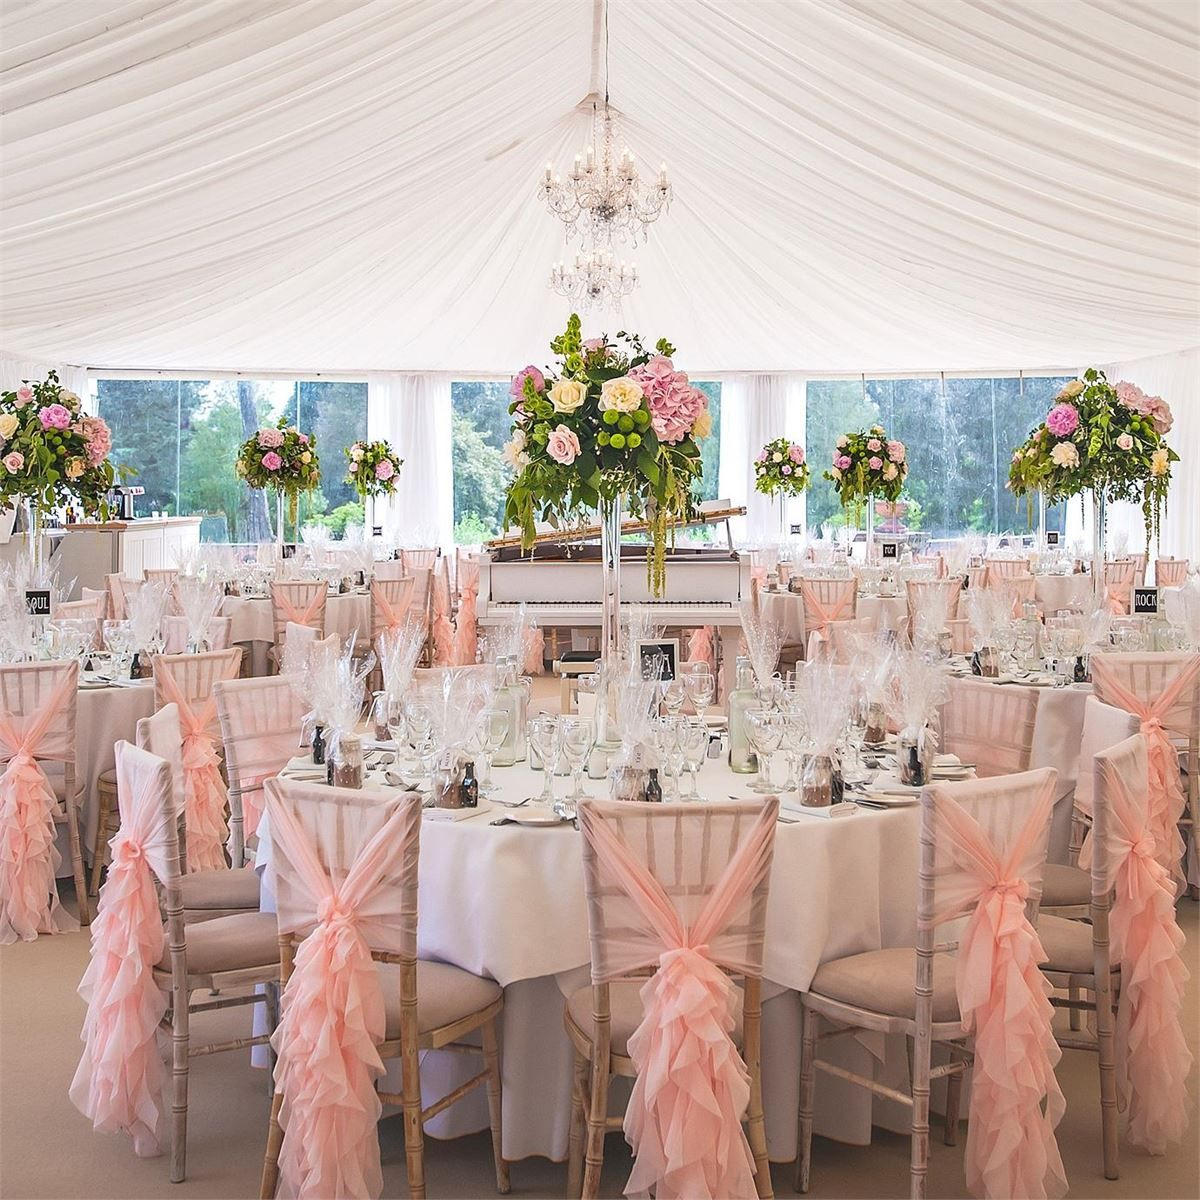 Chair cover wedding - Ellis Events Creative Chair Cover Hire And Venue Styling In Essex Wedding Chair Covers